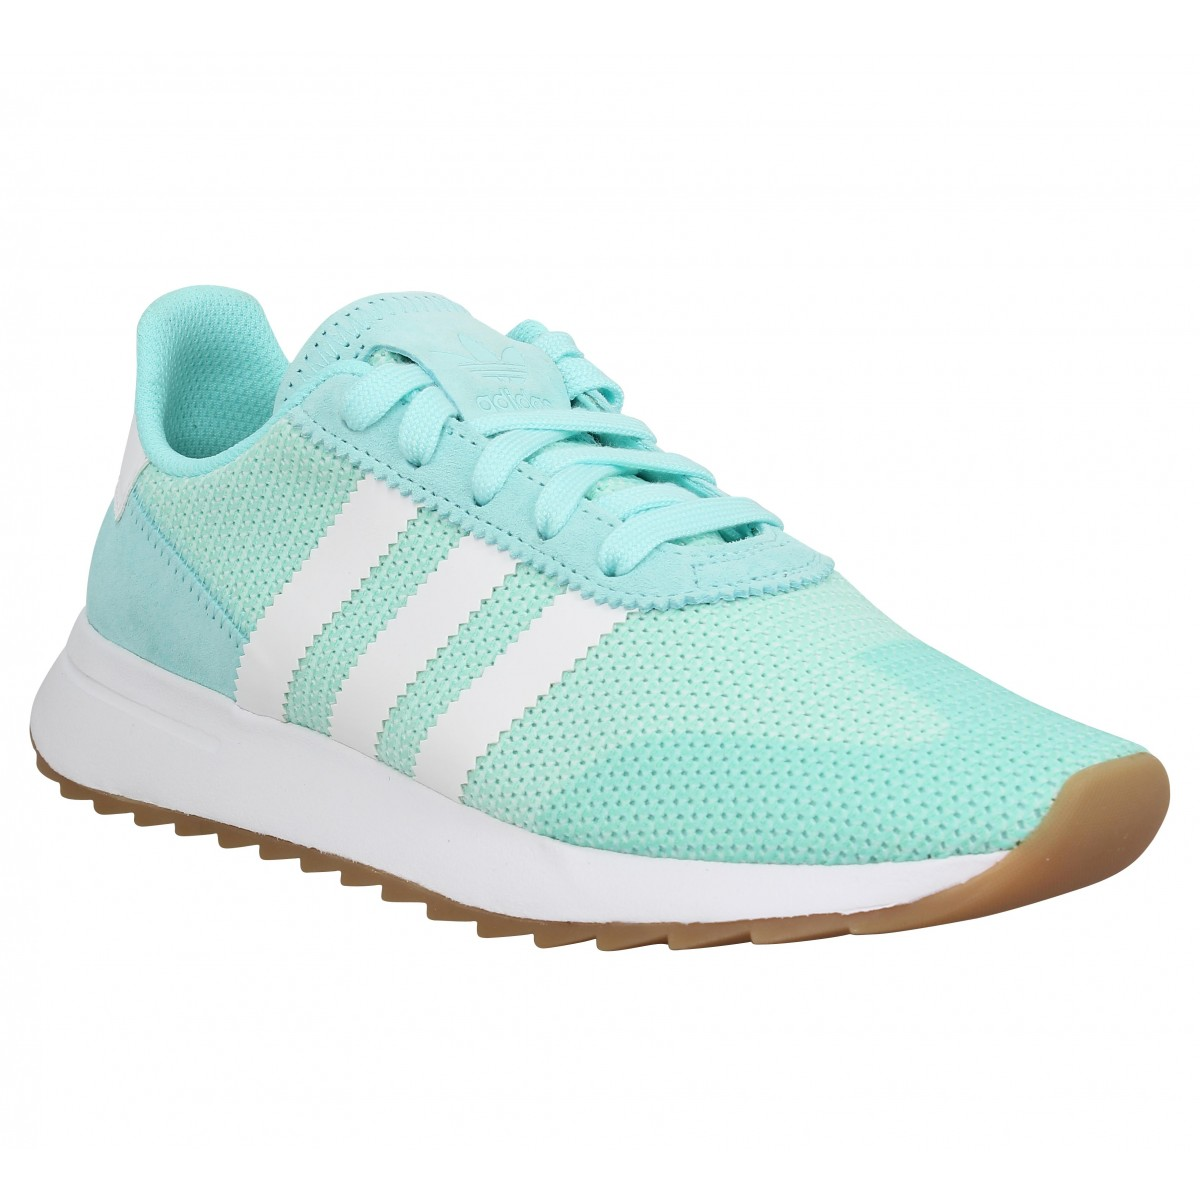 adidas Chaussures FLB RUNNER W Moins Cher NJg8lOf8z